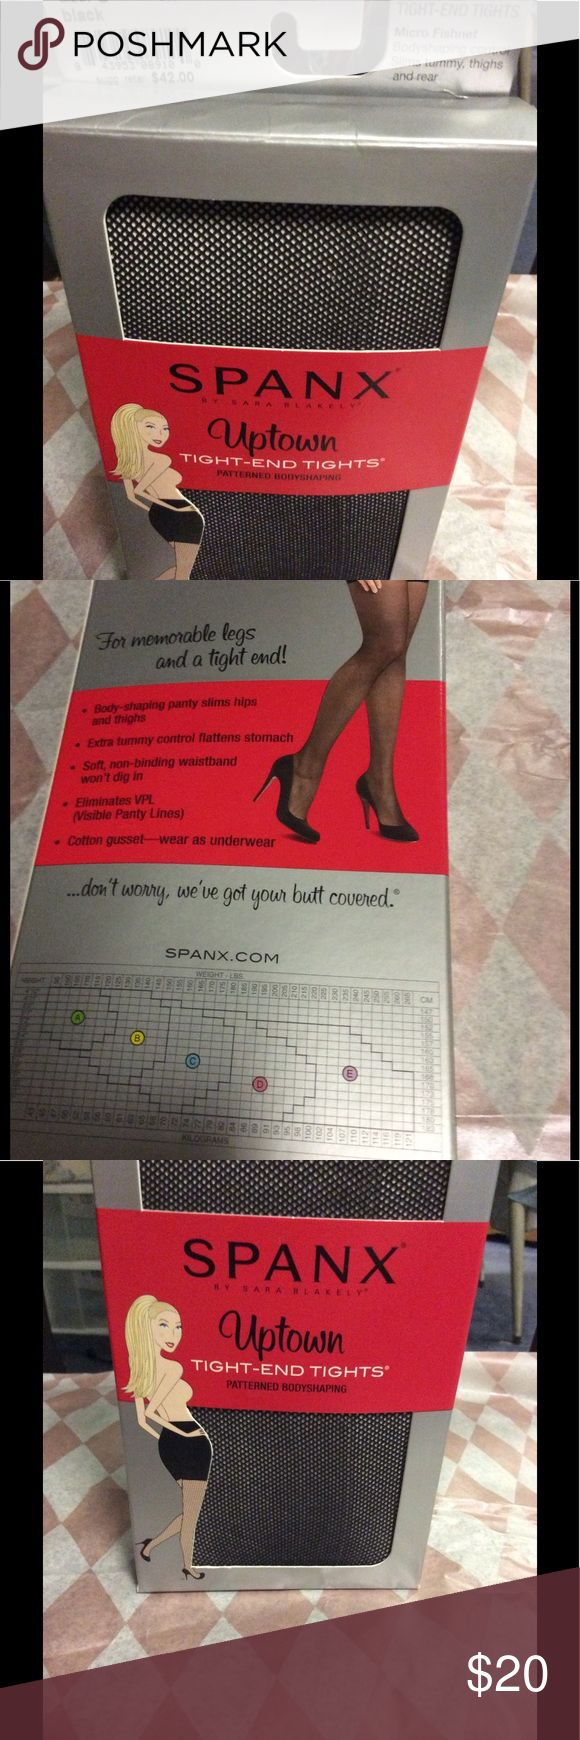 SPANX NEW UPTOWN TIGHT END TIGHTS BLACK SIZE C NEW It is time to look your best ! SPANX by Sara Blakely, UPTOWN TIGHT END TIGHTS ..black stockings that shape and smooth your waist, rear end , thighs and legs. SPANX size C . Tiny amount of damage on the bottom of the box. Non smoking home, please ask questions you may have, thank you for looking..... SPANX Intimates & Sleepwear Shapewear